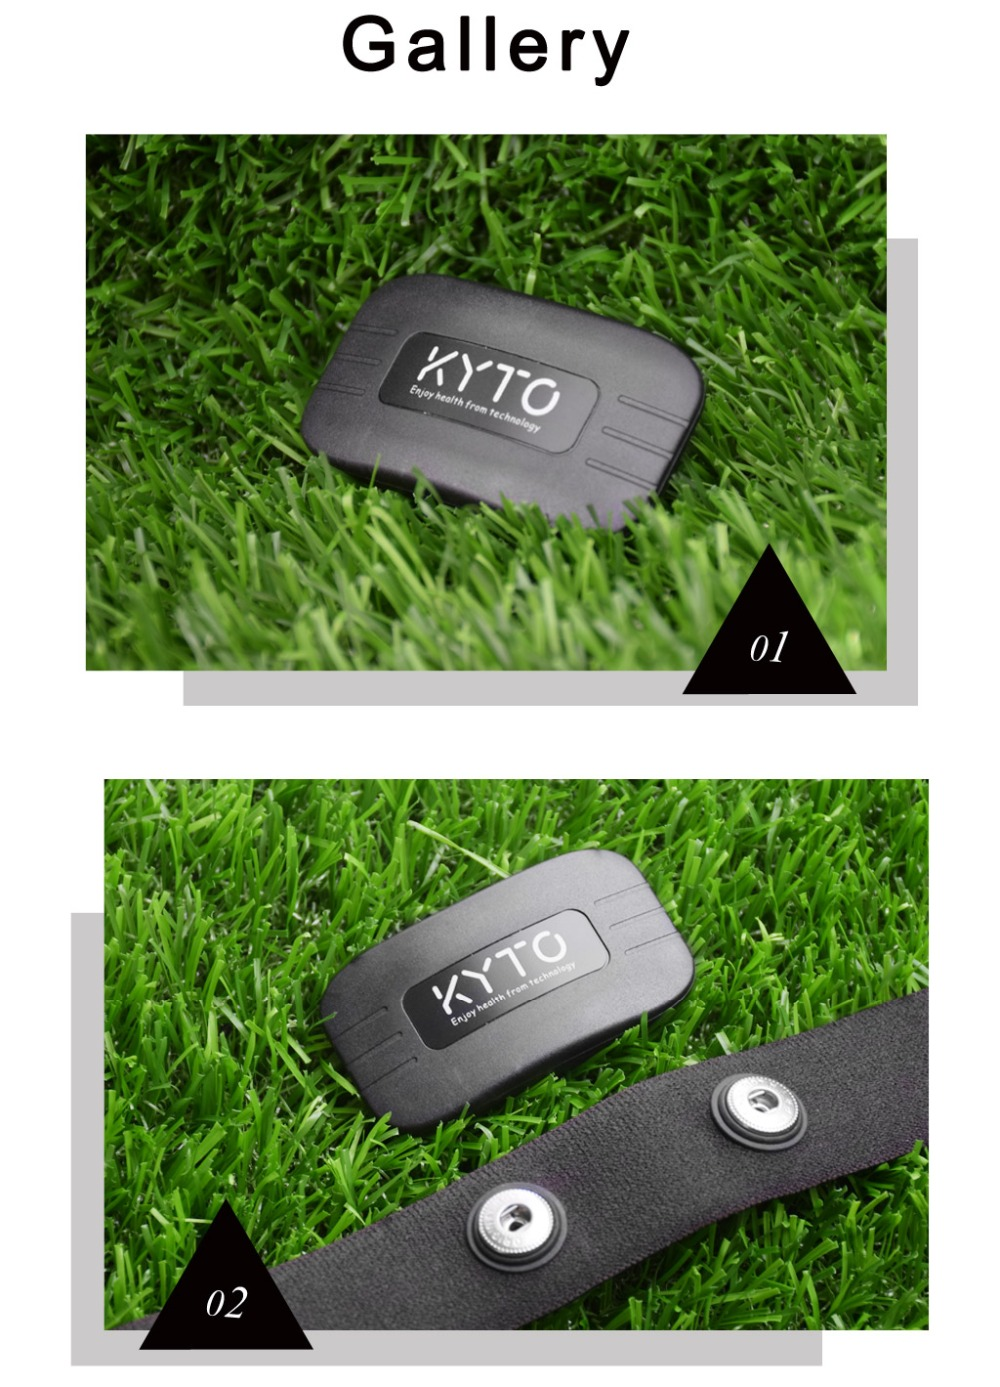 Heart-rate-monitor-kyto2809_08